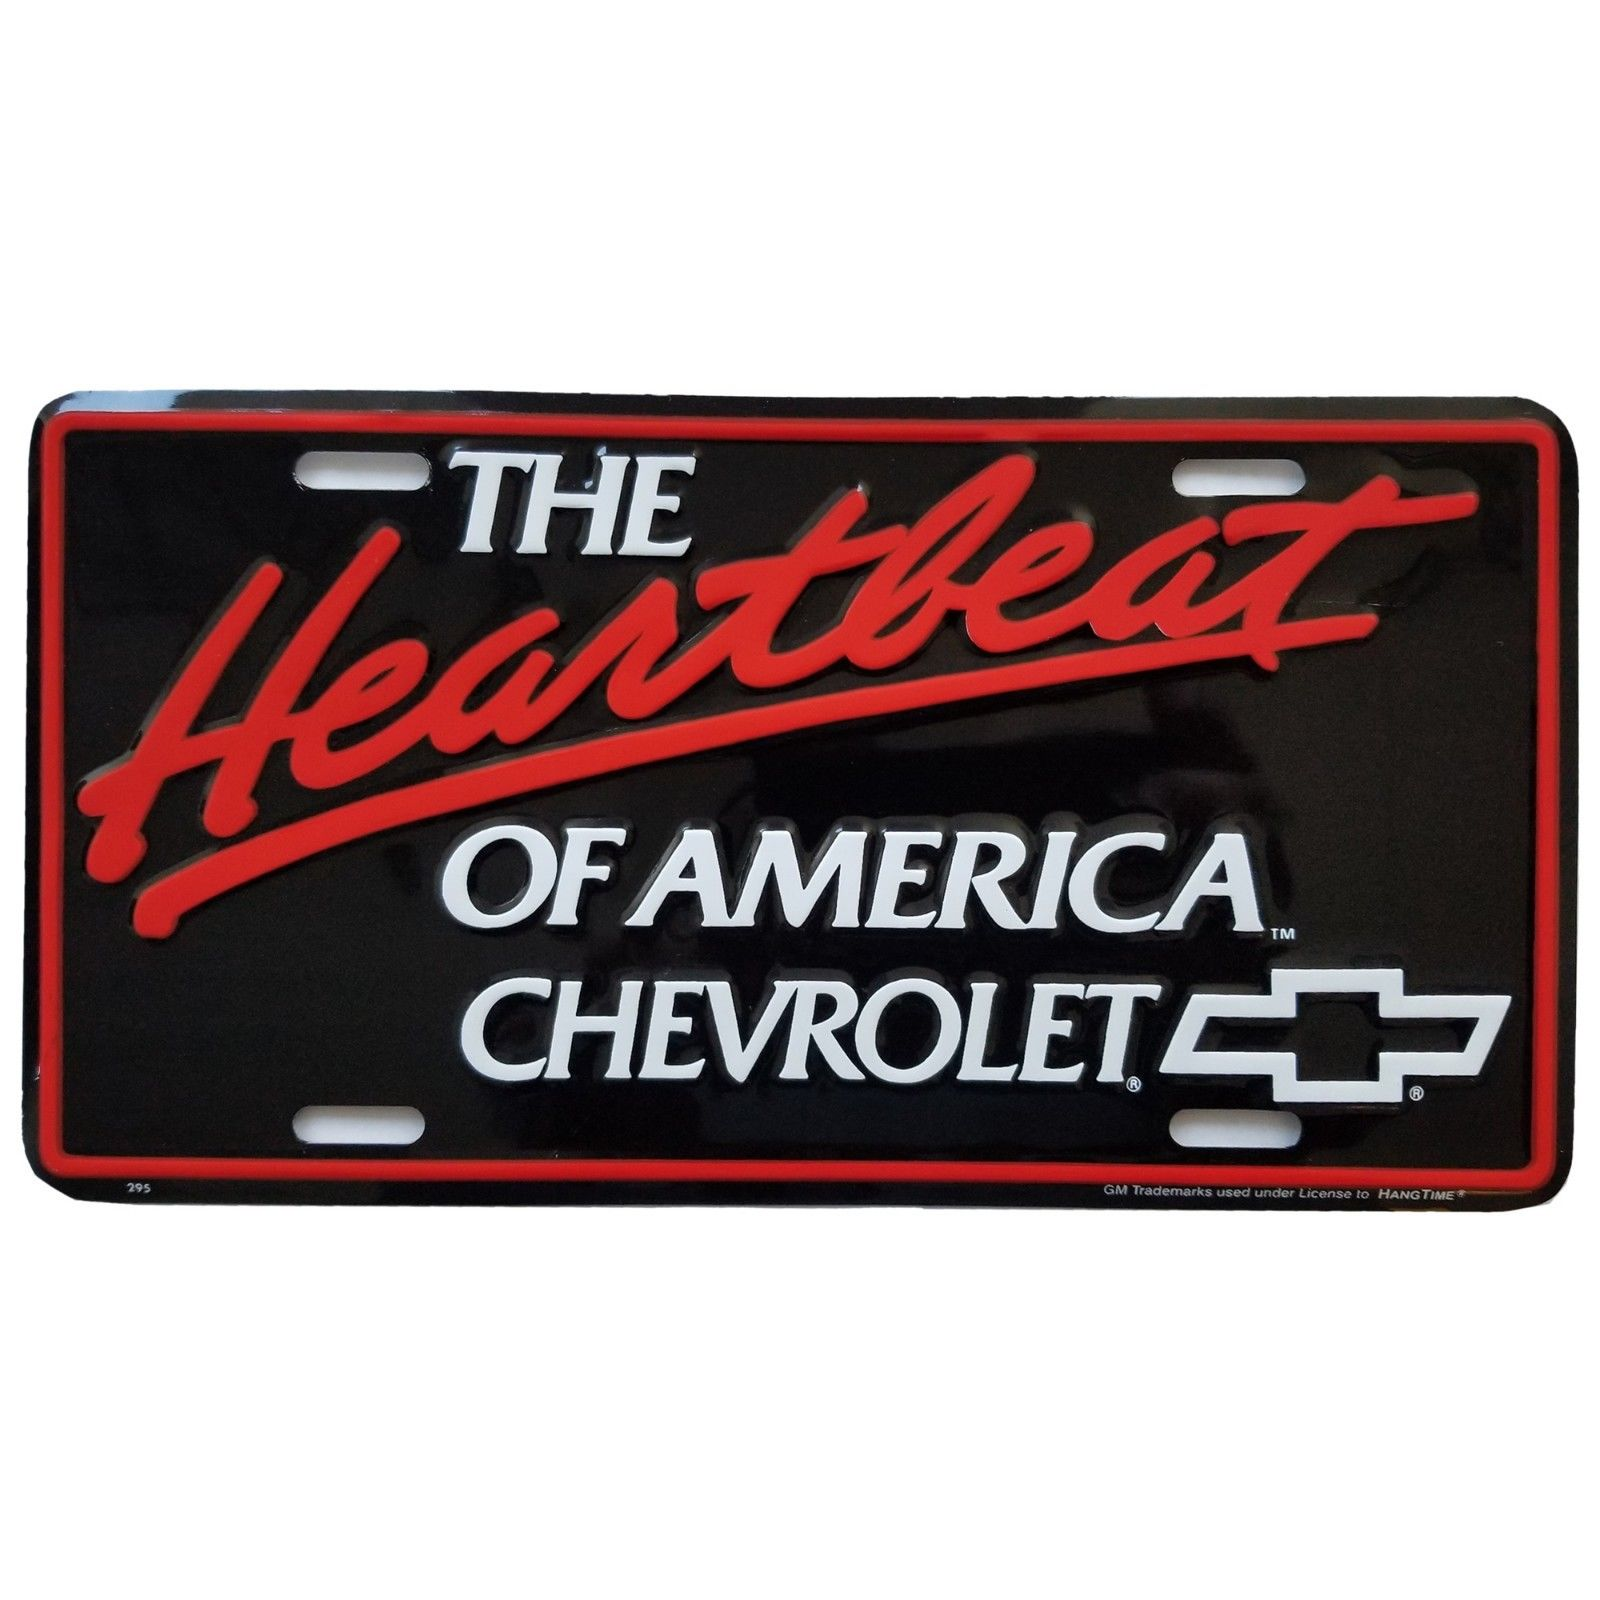 THE Heartbeat OF AMERICA CHEVY Chevrolet Bowtie Metal